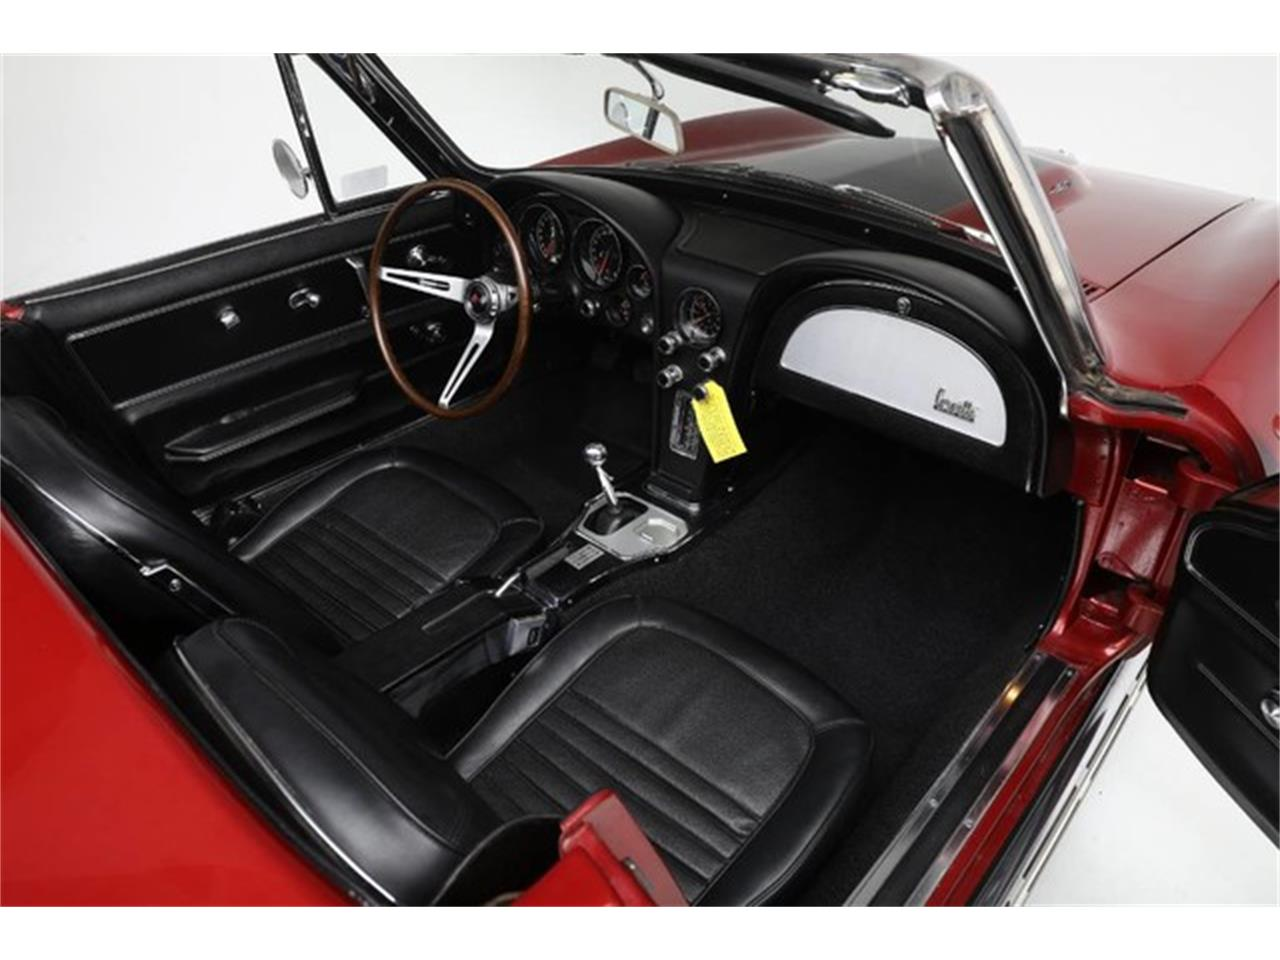 Large Picture of 1967 Corvette located in Clifton Park New York Auction Vehicle Offered by Prestige Motor Car Co. - Q1X7